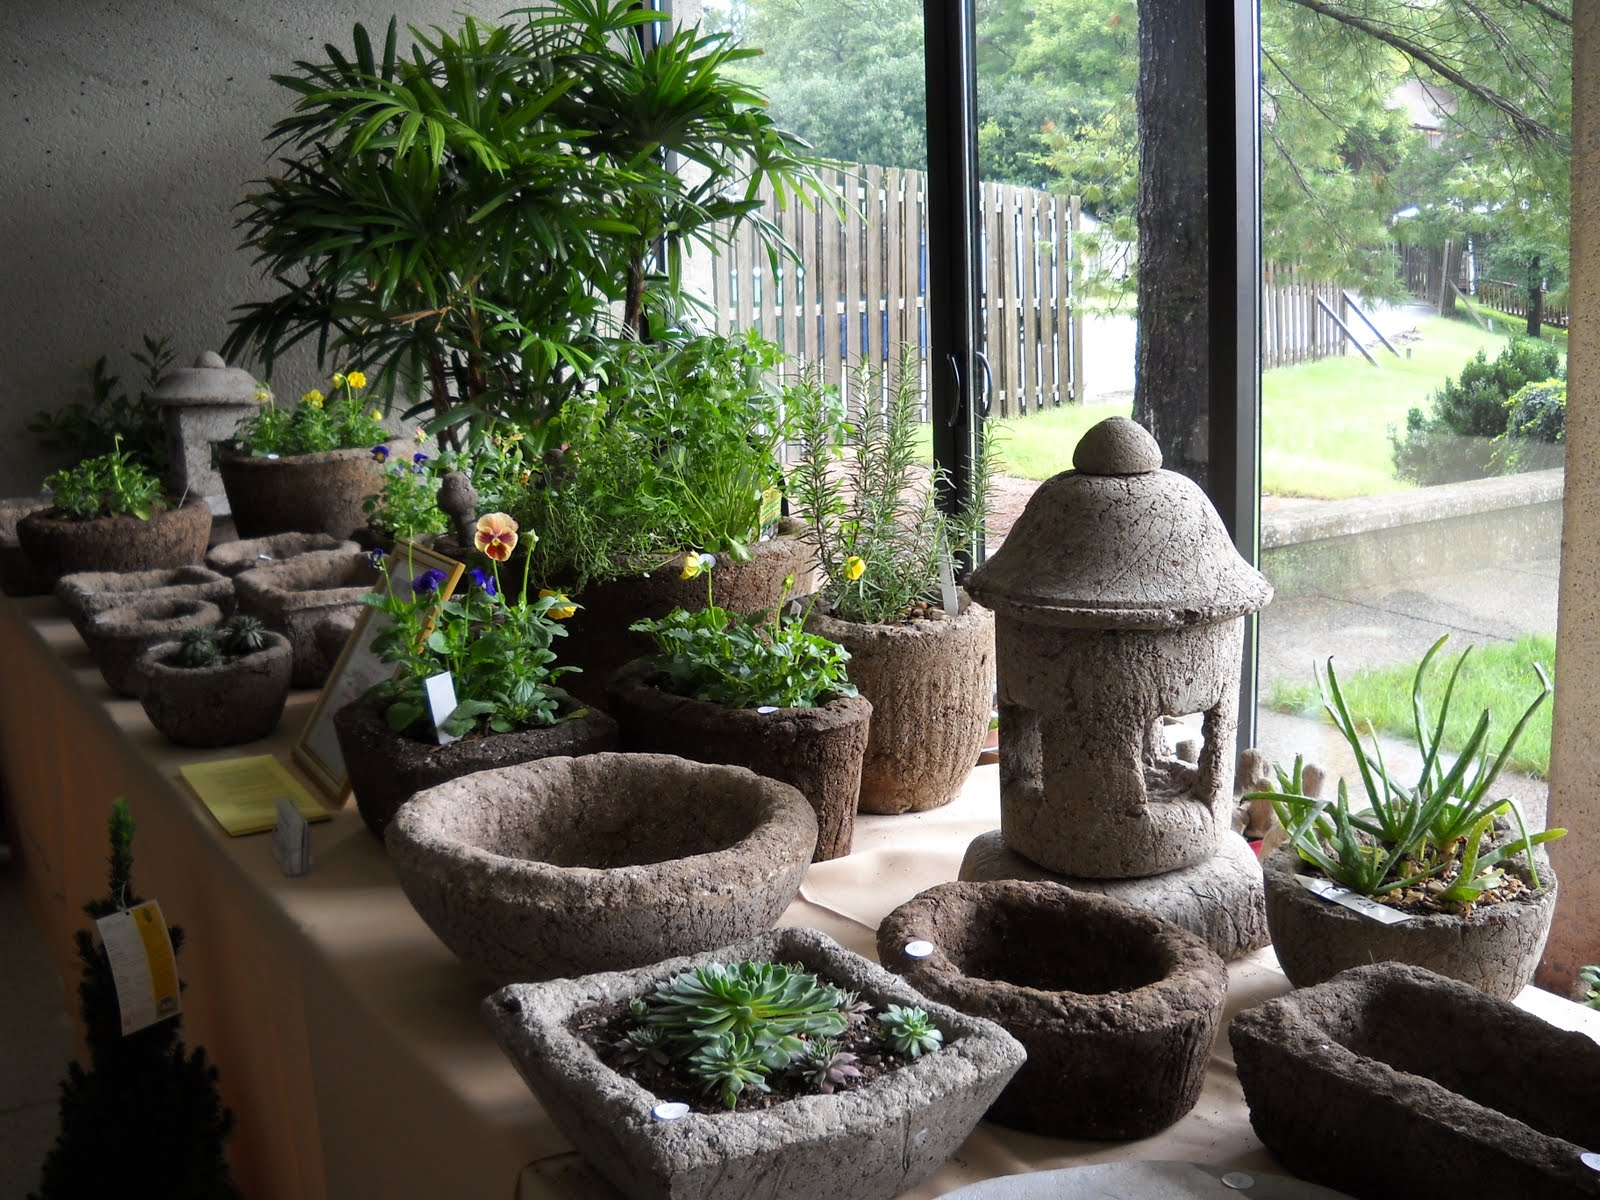 STONE ARTISANS Garden Ornaments And Planters